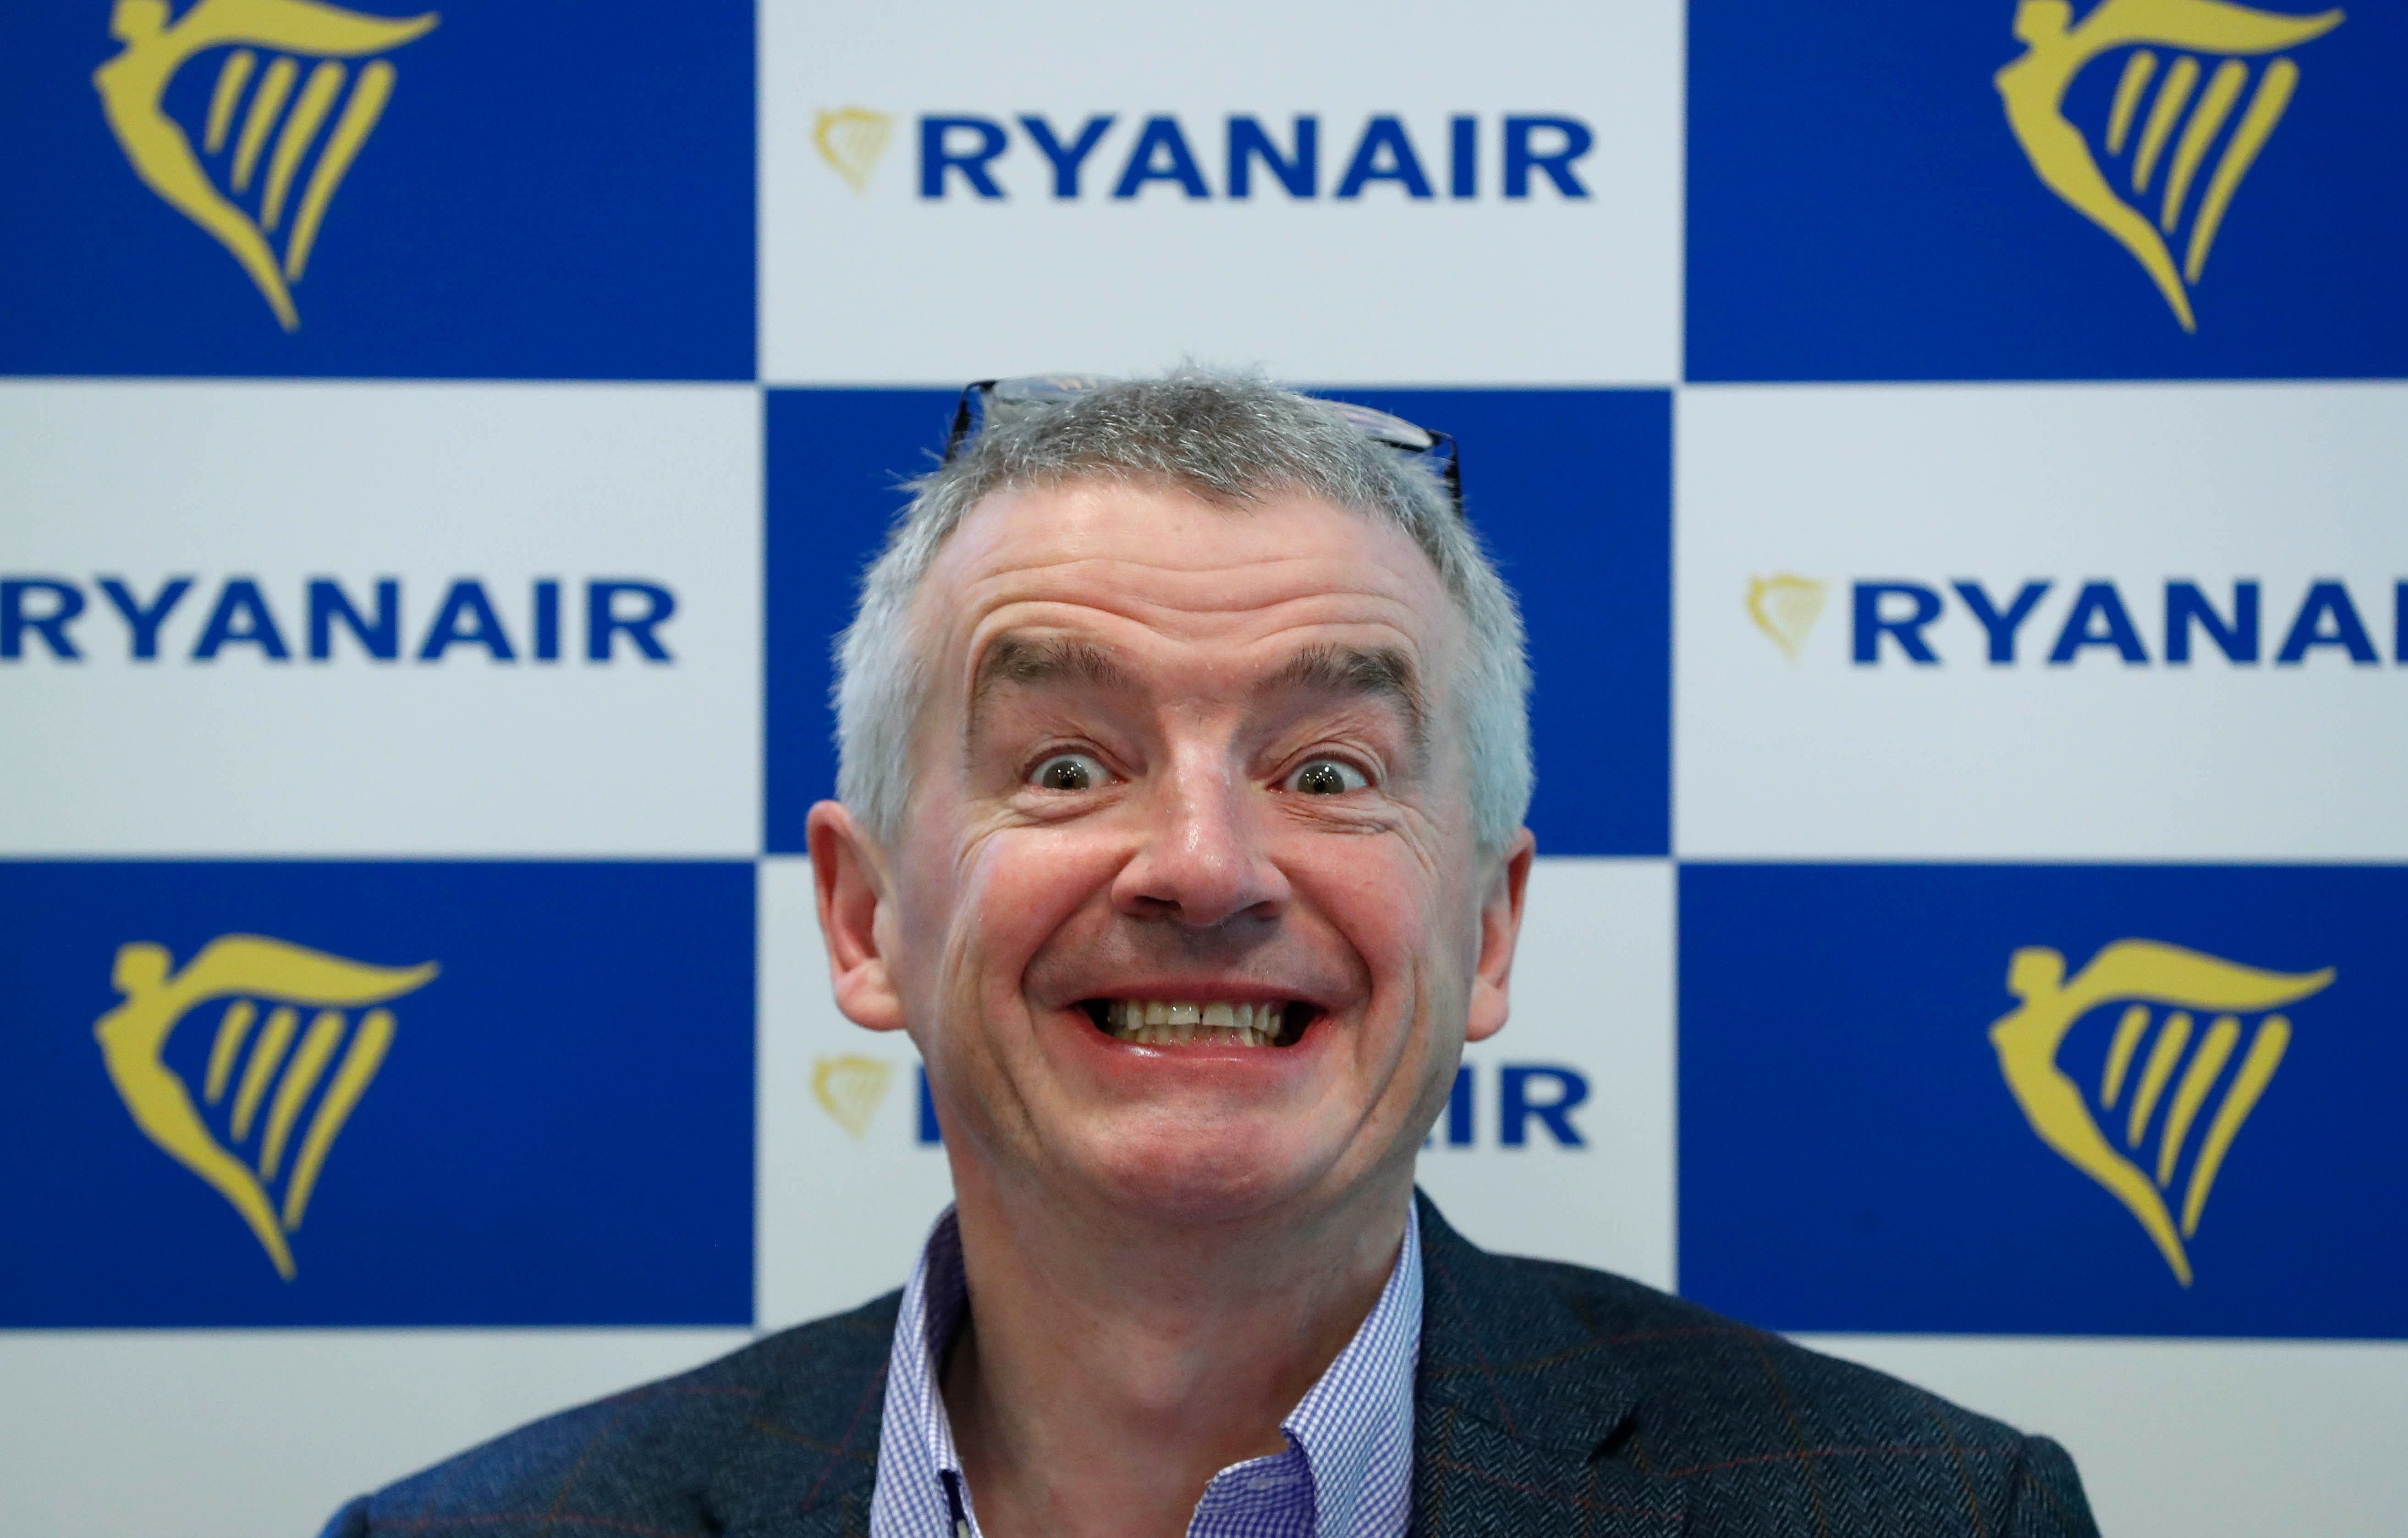 Ryanair Is Refusing To Compensate Customers For Flights Cancelled Due To